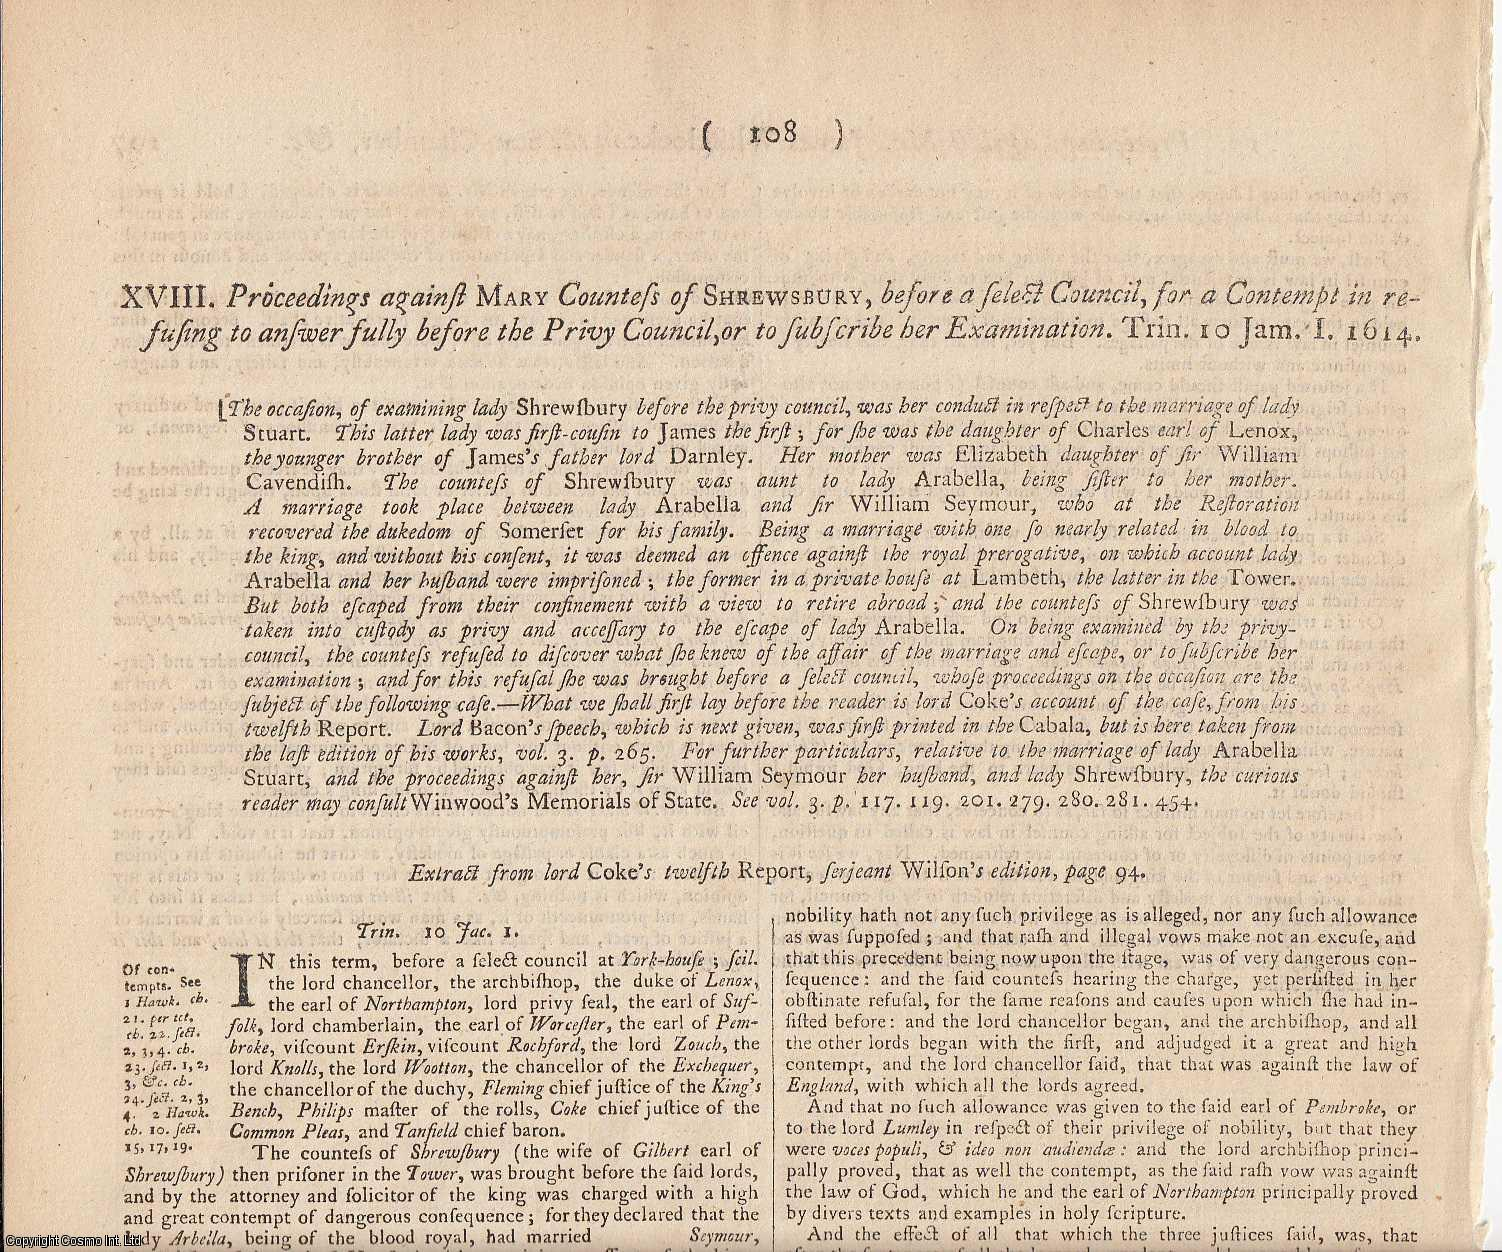 LADY ARABELLA STUART.  Proceedings against Mary, Countess of Shrewsbury, before a select Council, for a Contempt in refusing to answer fully before the Privy Council, or to subscribe her Examination. 1614., [Trial].